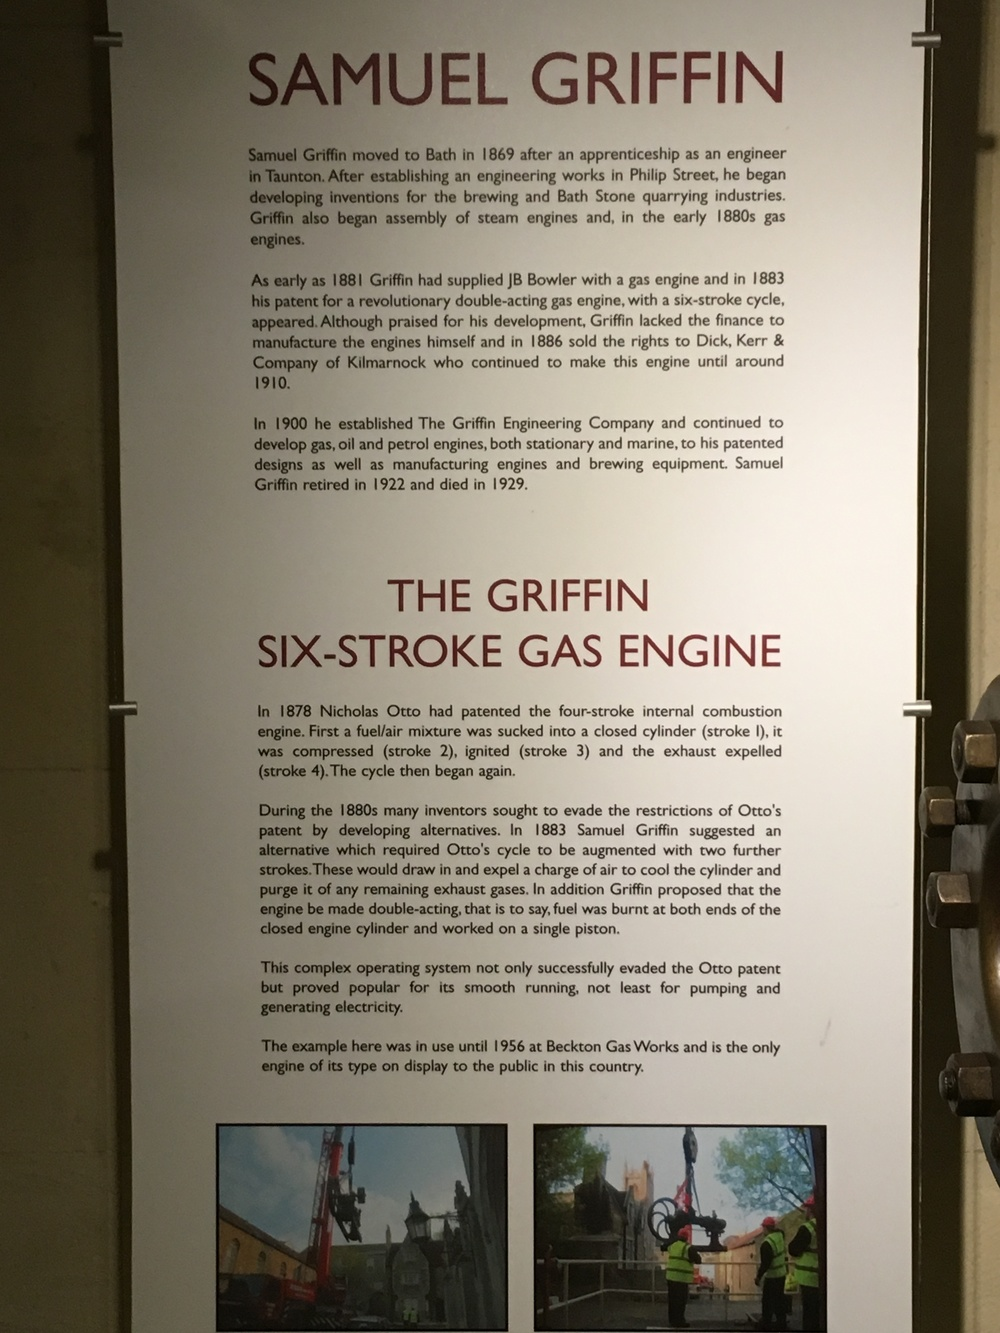 Details on the invention and use of the Griffin Engine.